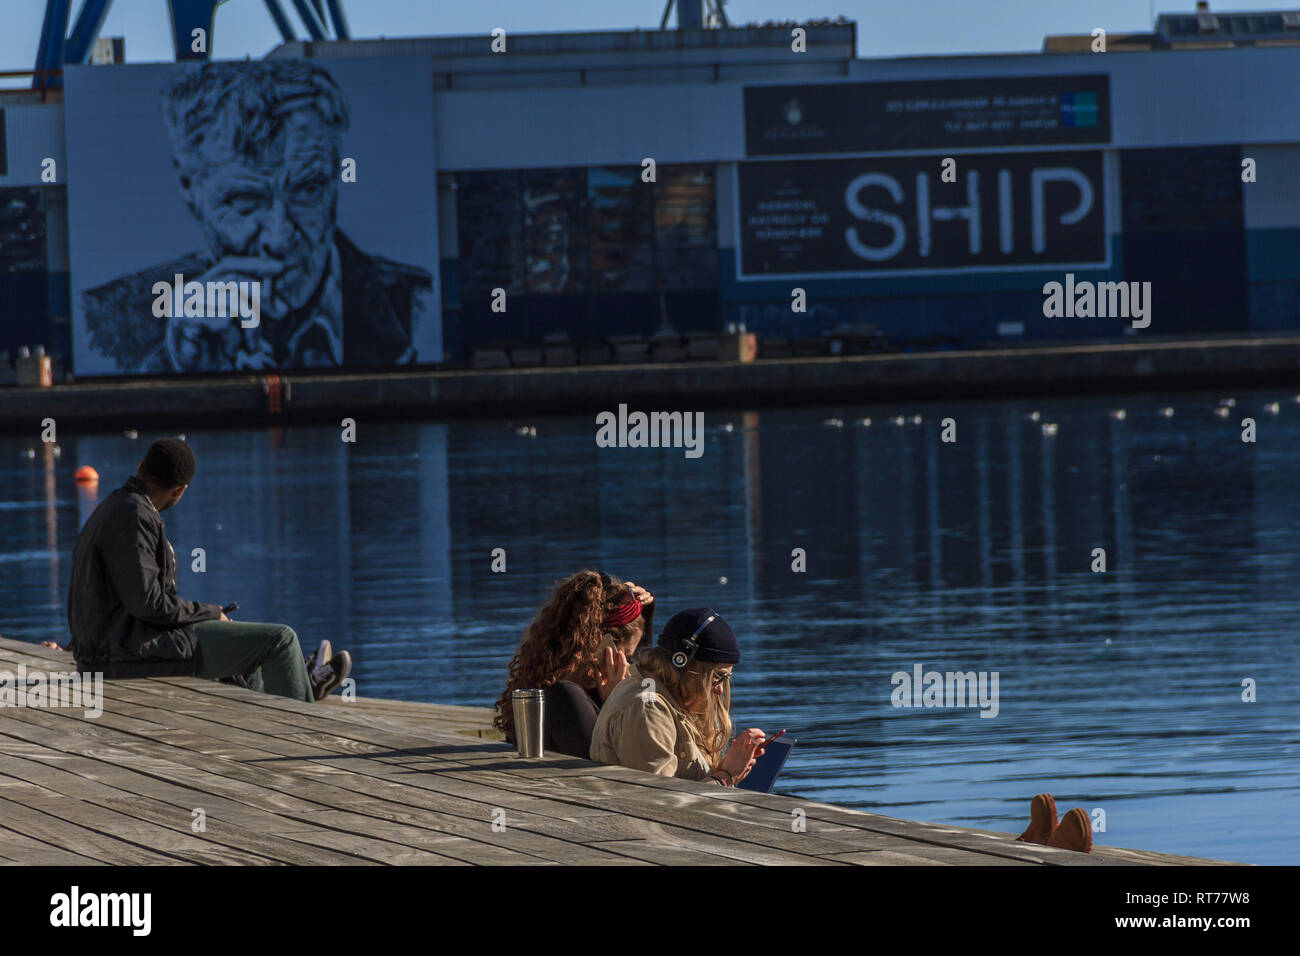 Students relaxing in the sun by the harbour during a period of unseasonably warm weather at Aarhus, Denmark. Temperatures reached 16C although the February average is 6C. Aarhus, Denmark. February 2019. - Stock Image